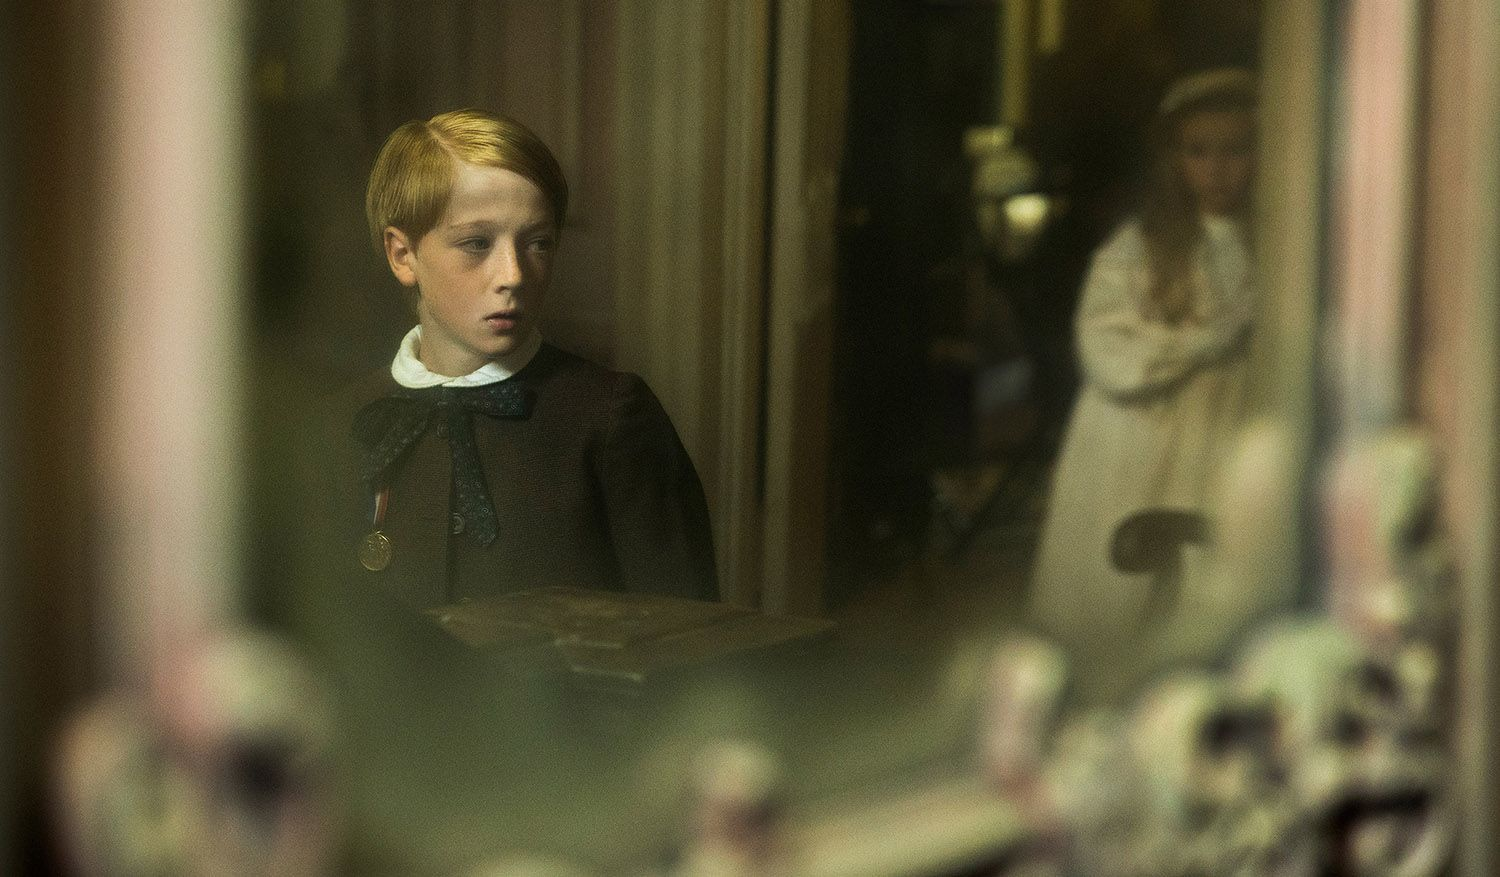 film still from the little stranger